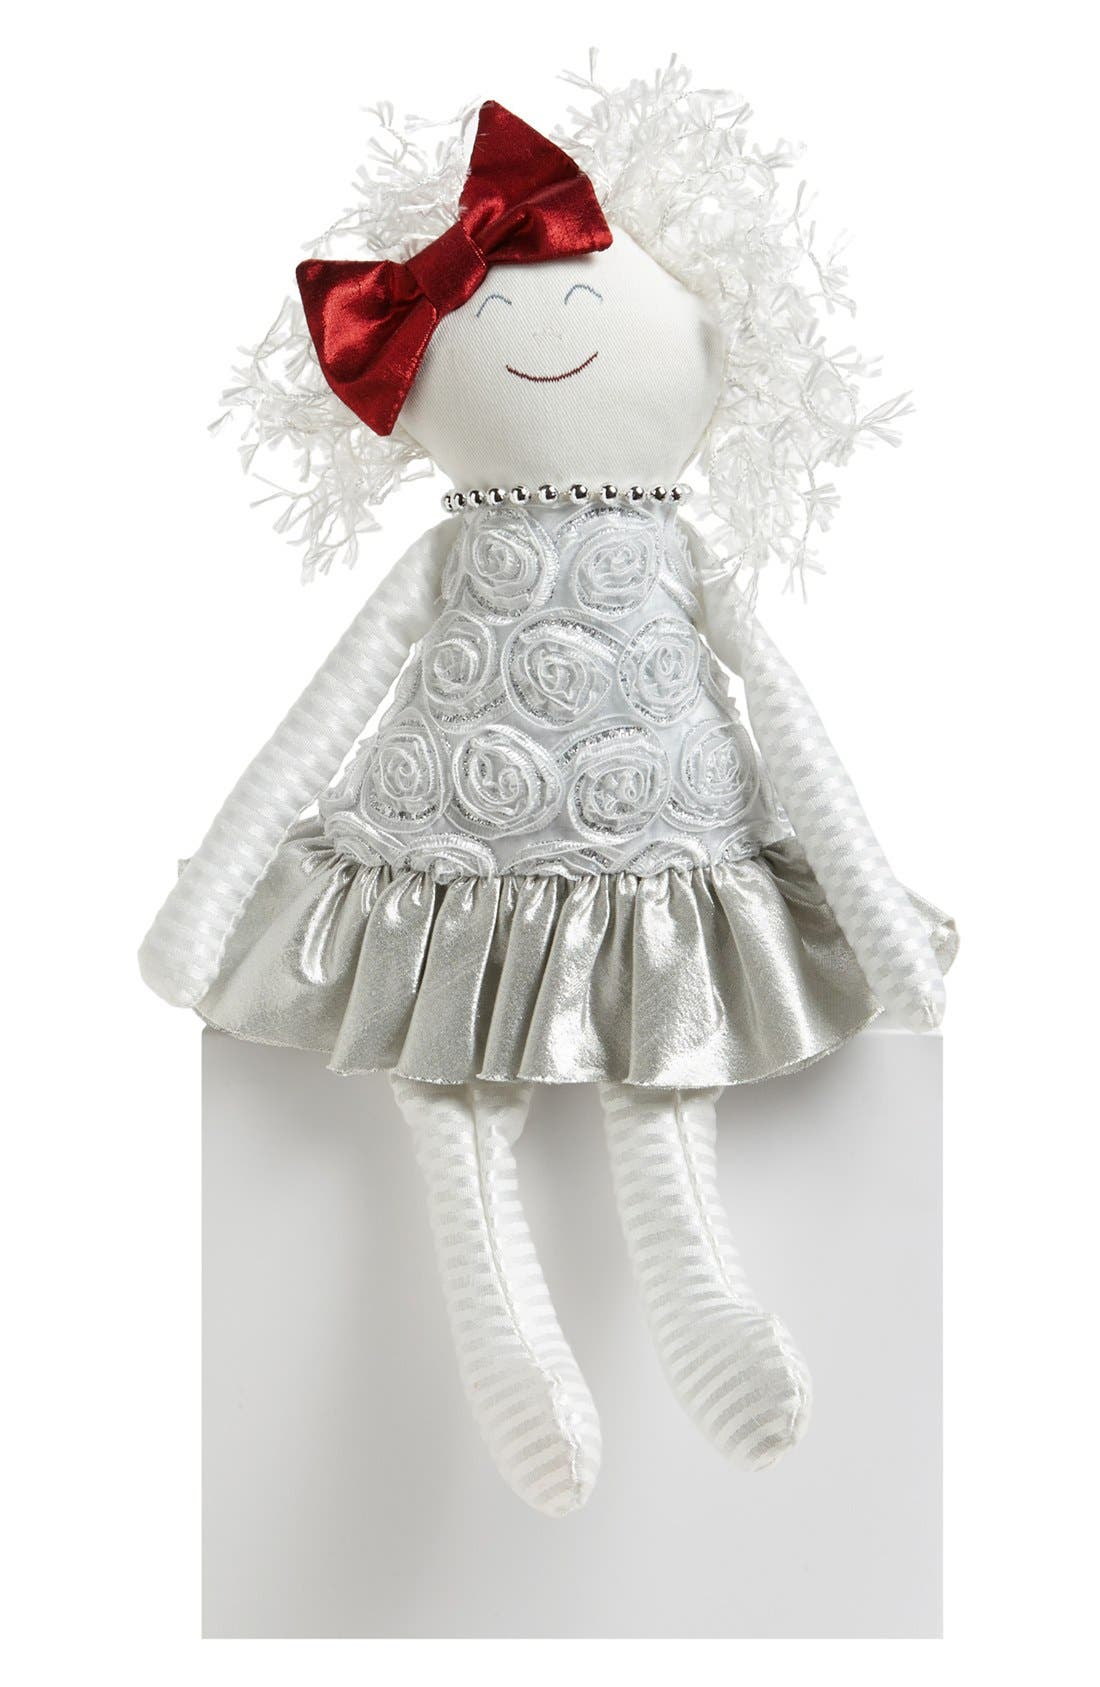 Main Image - Woof & Poof 'Party Girl' Doll